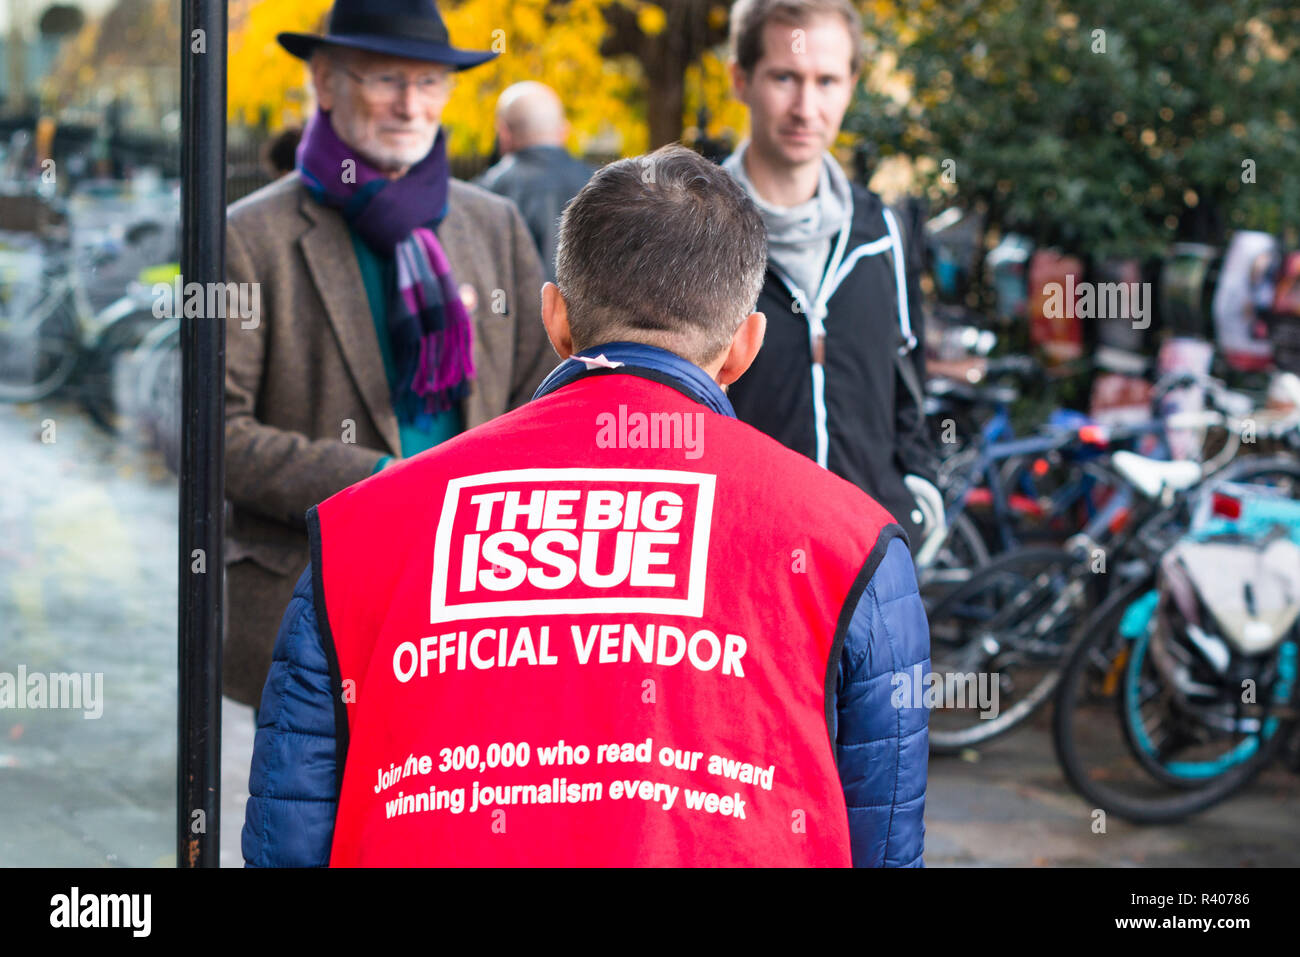 An official vendor of the Big Issue street newspaper on the streets of Cambridge, England, UK. - Stock Image